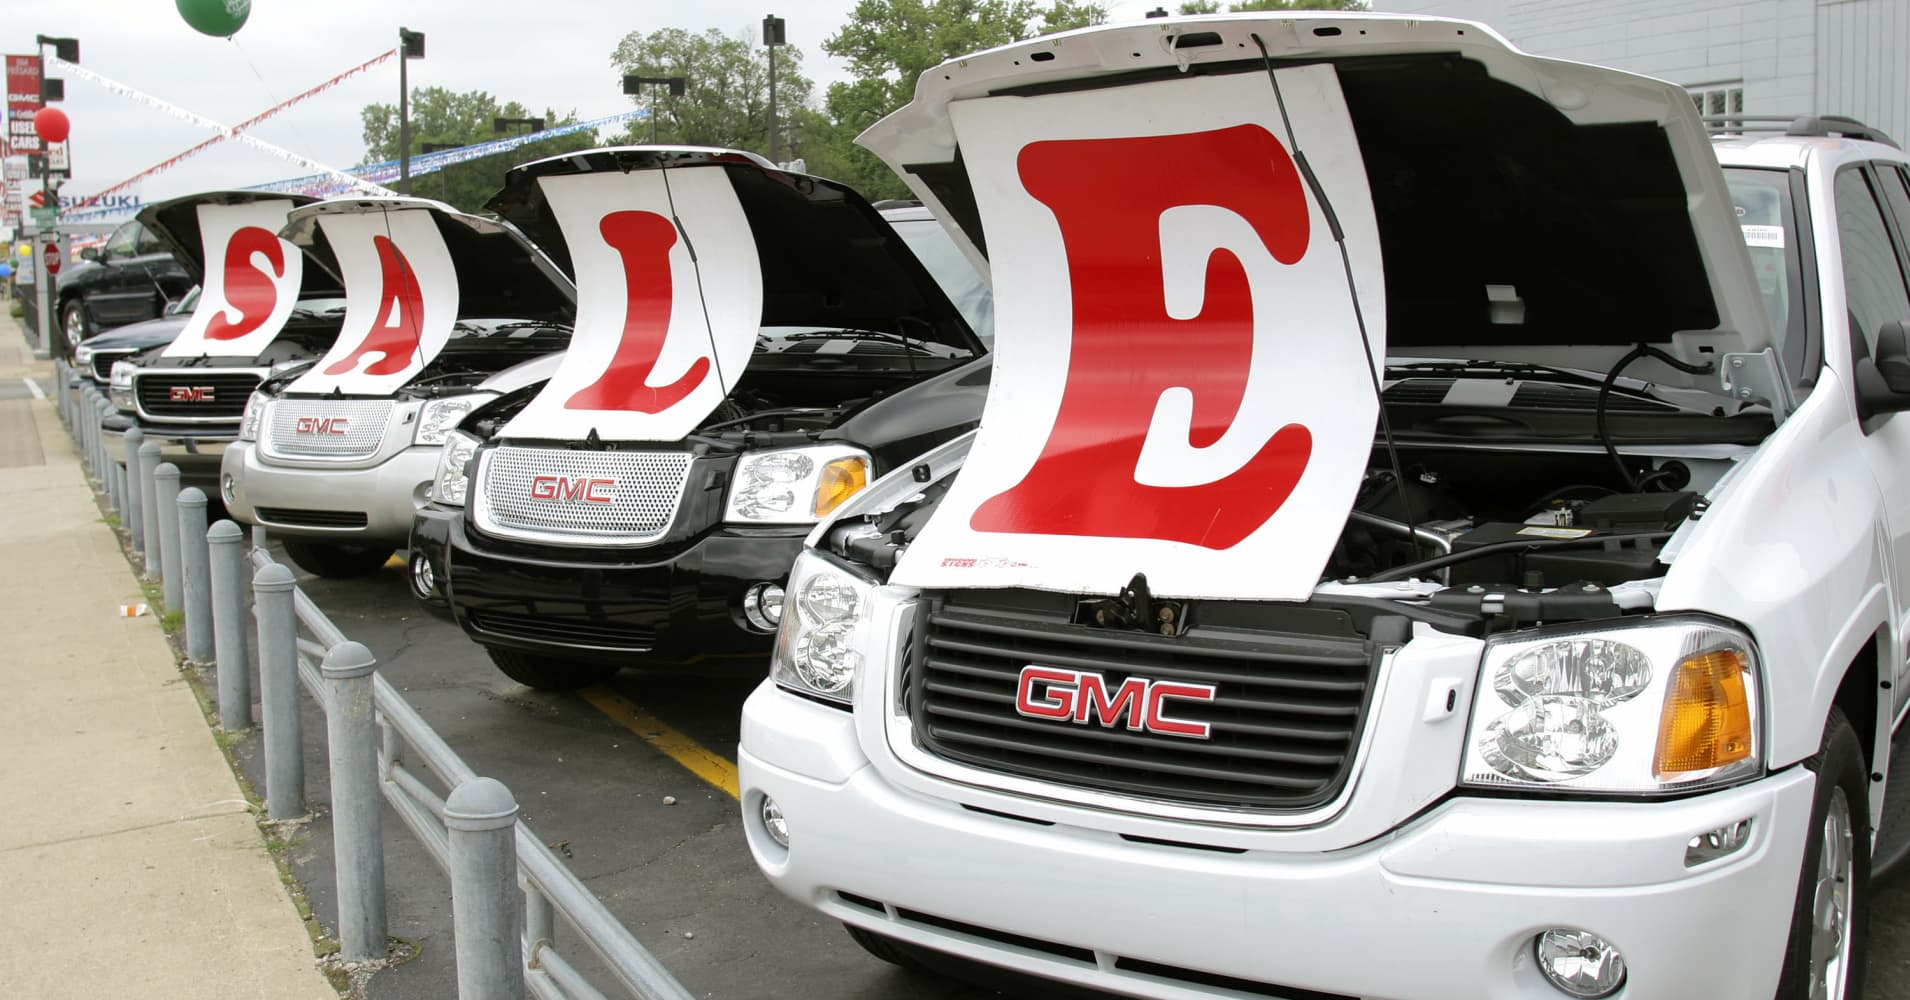 Sale signs lie on vehicles at a General Motors Chevrolet dealership in Ferndale, Michigan.